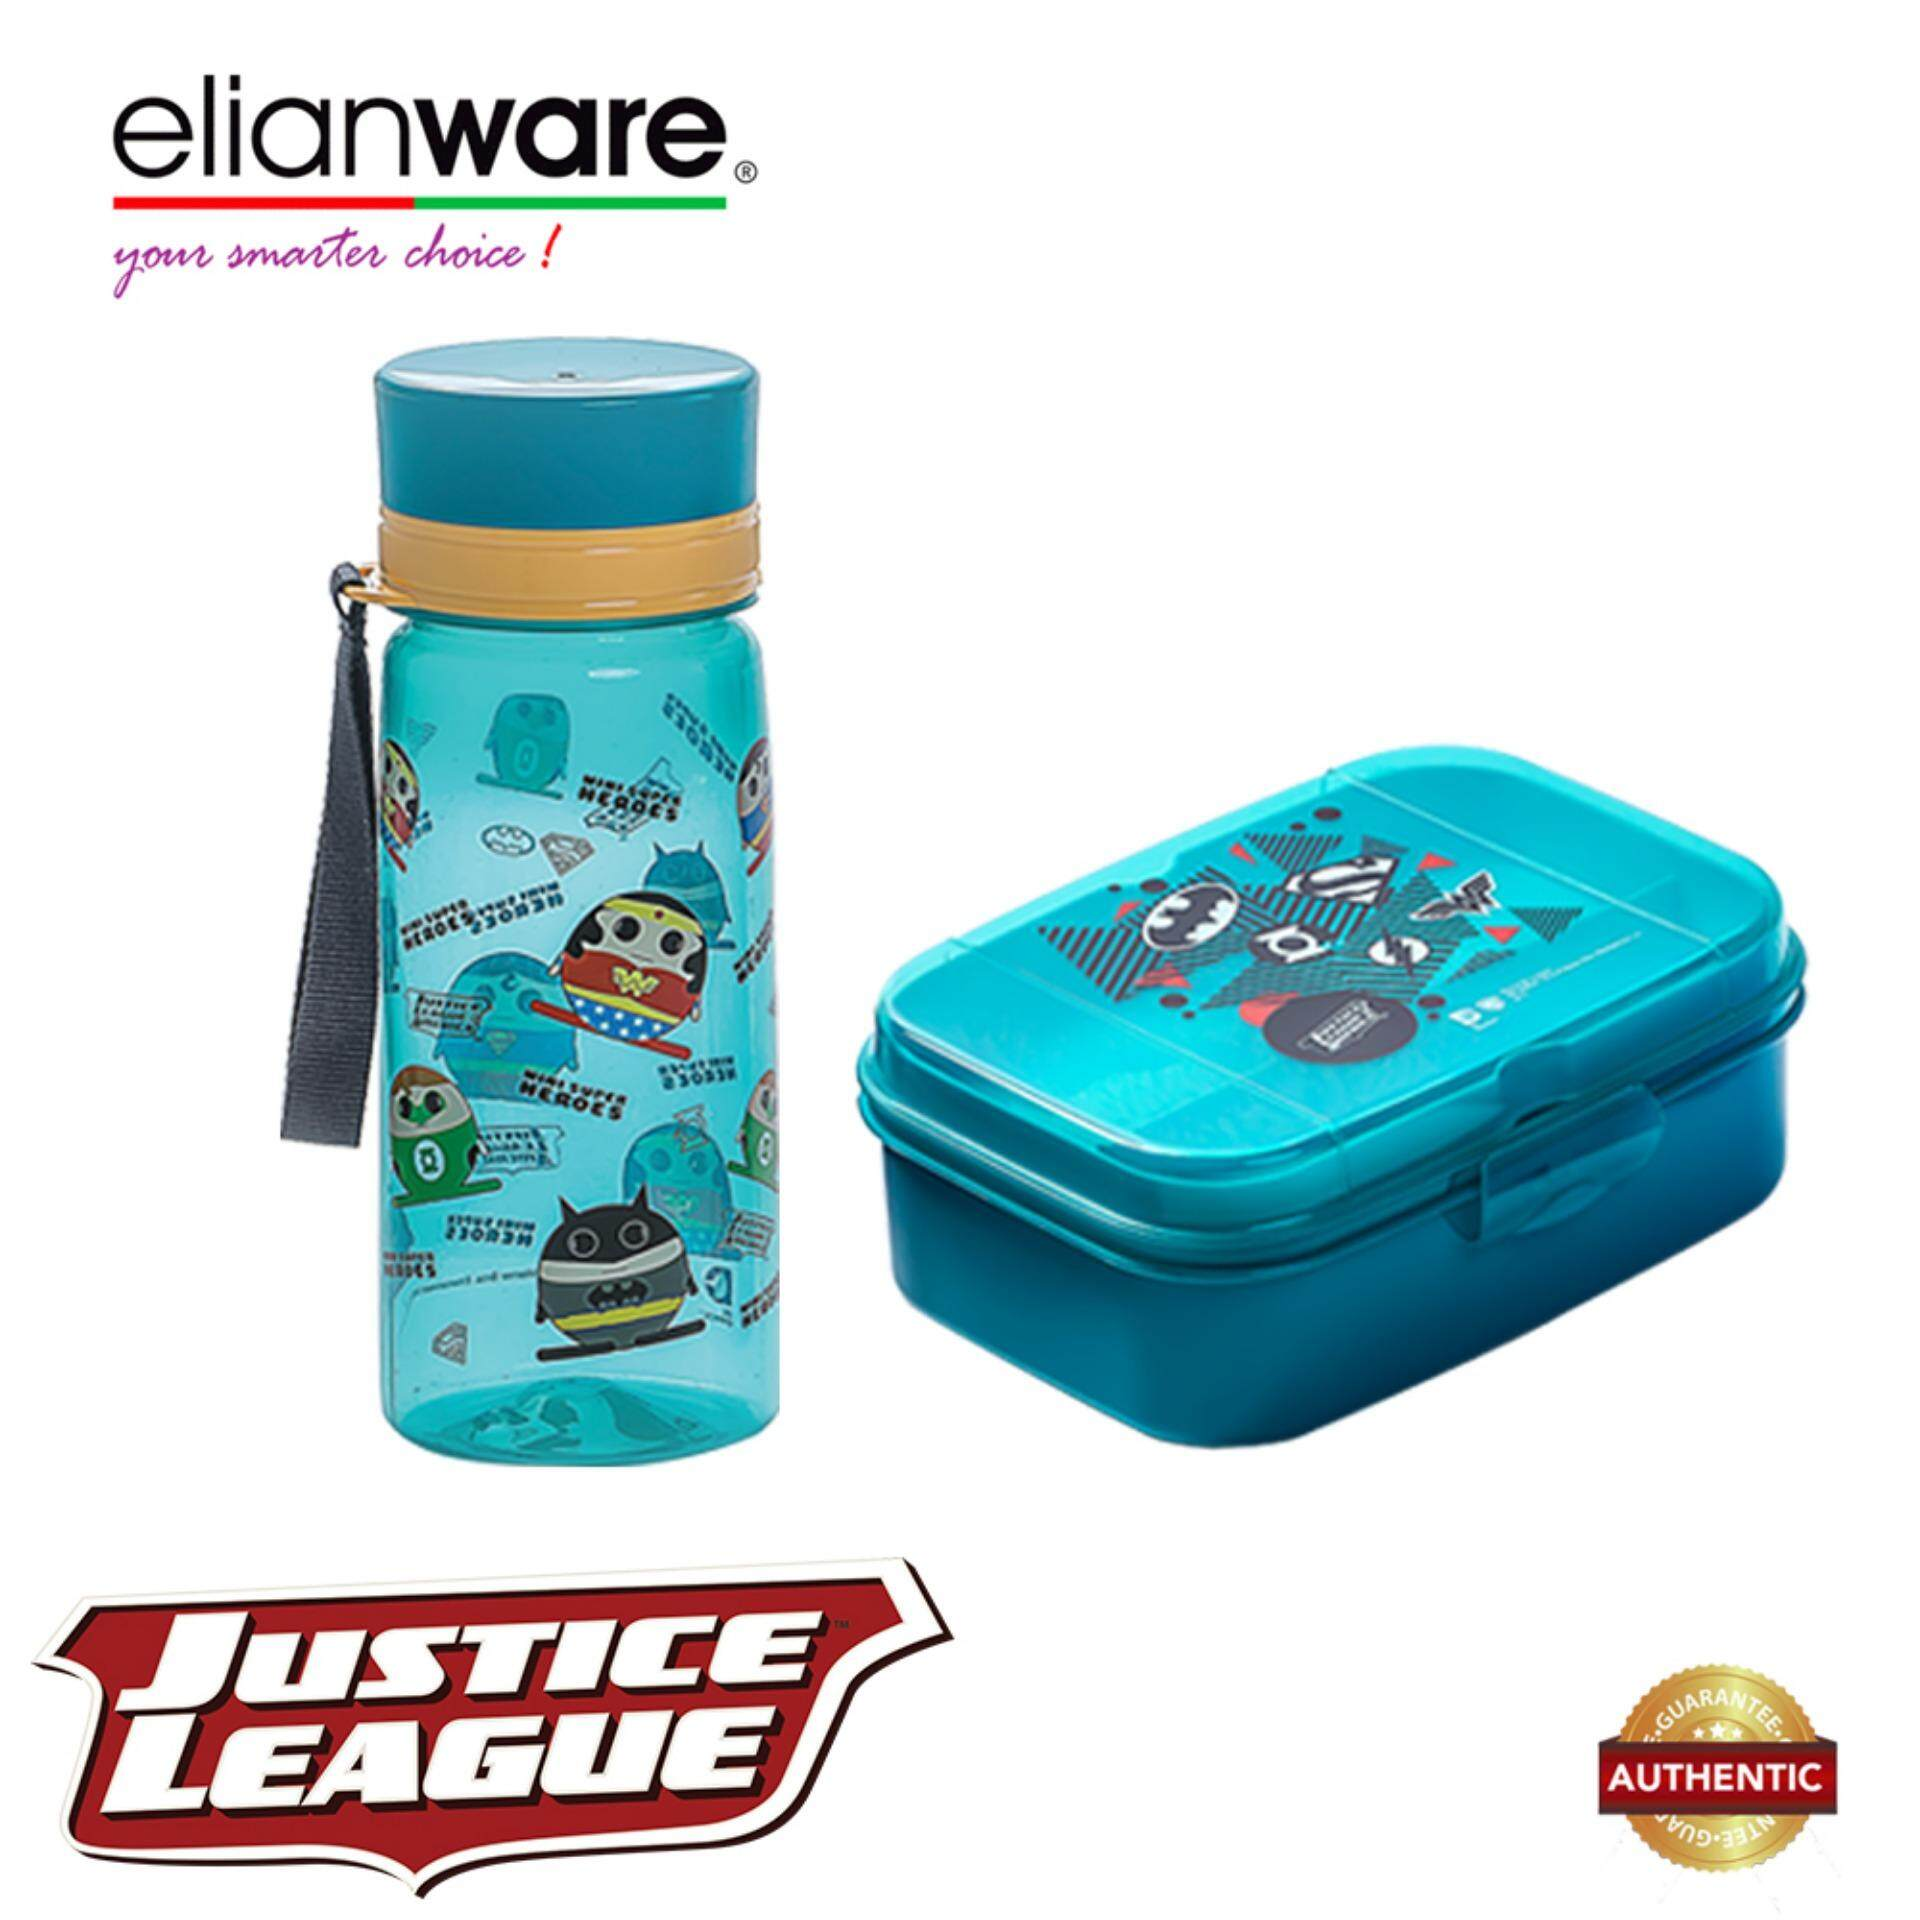 Elianware DC Justice League Mini Superheroes Lunchbox & Water Tumbler Value Set